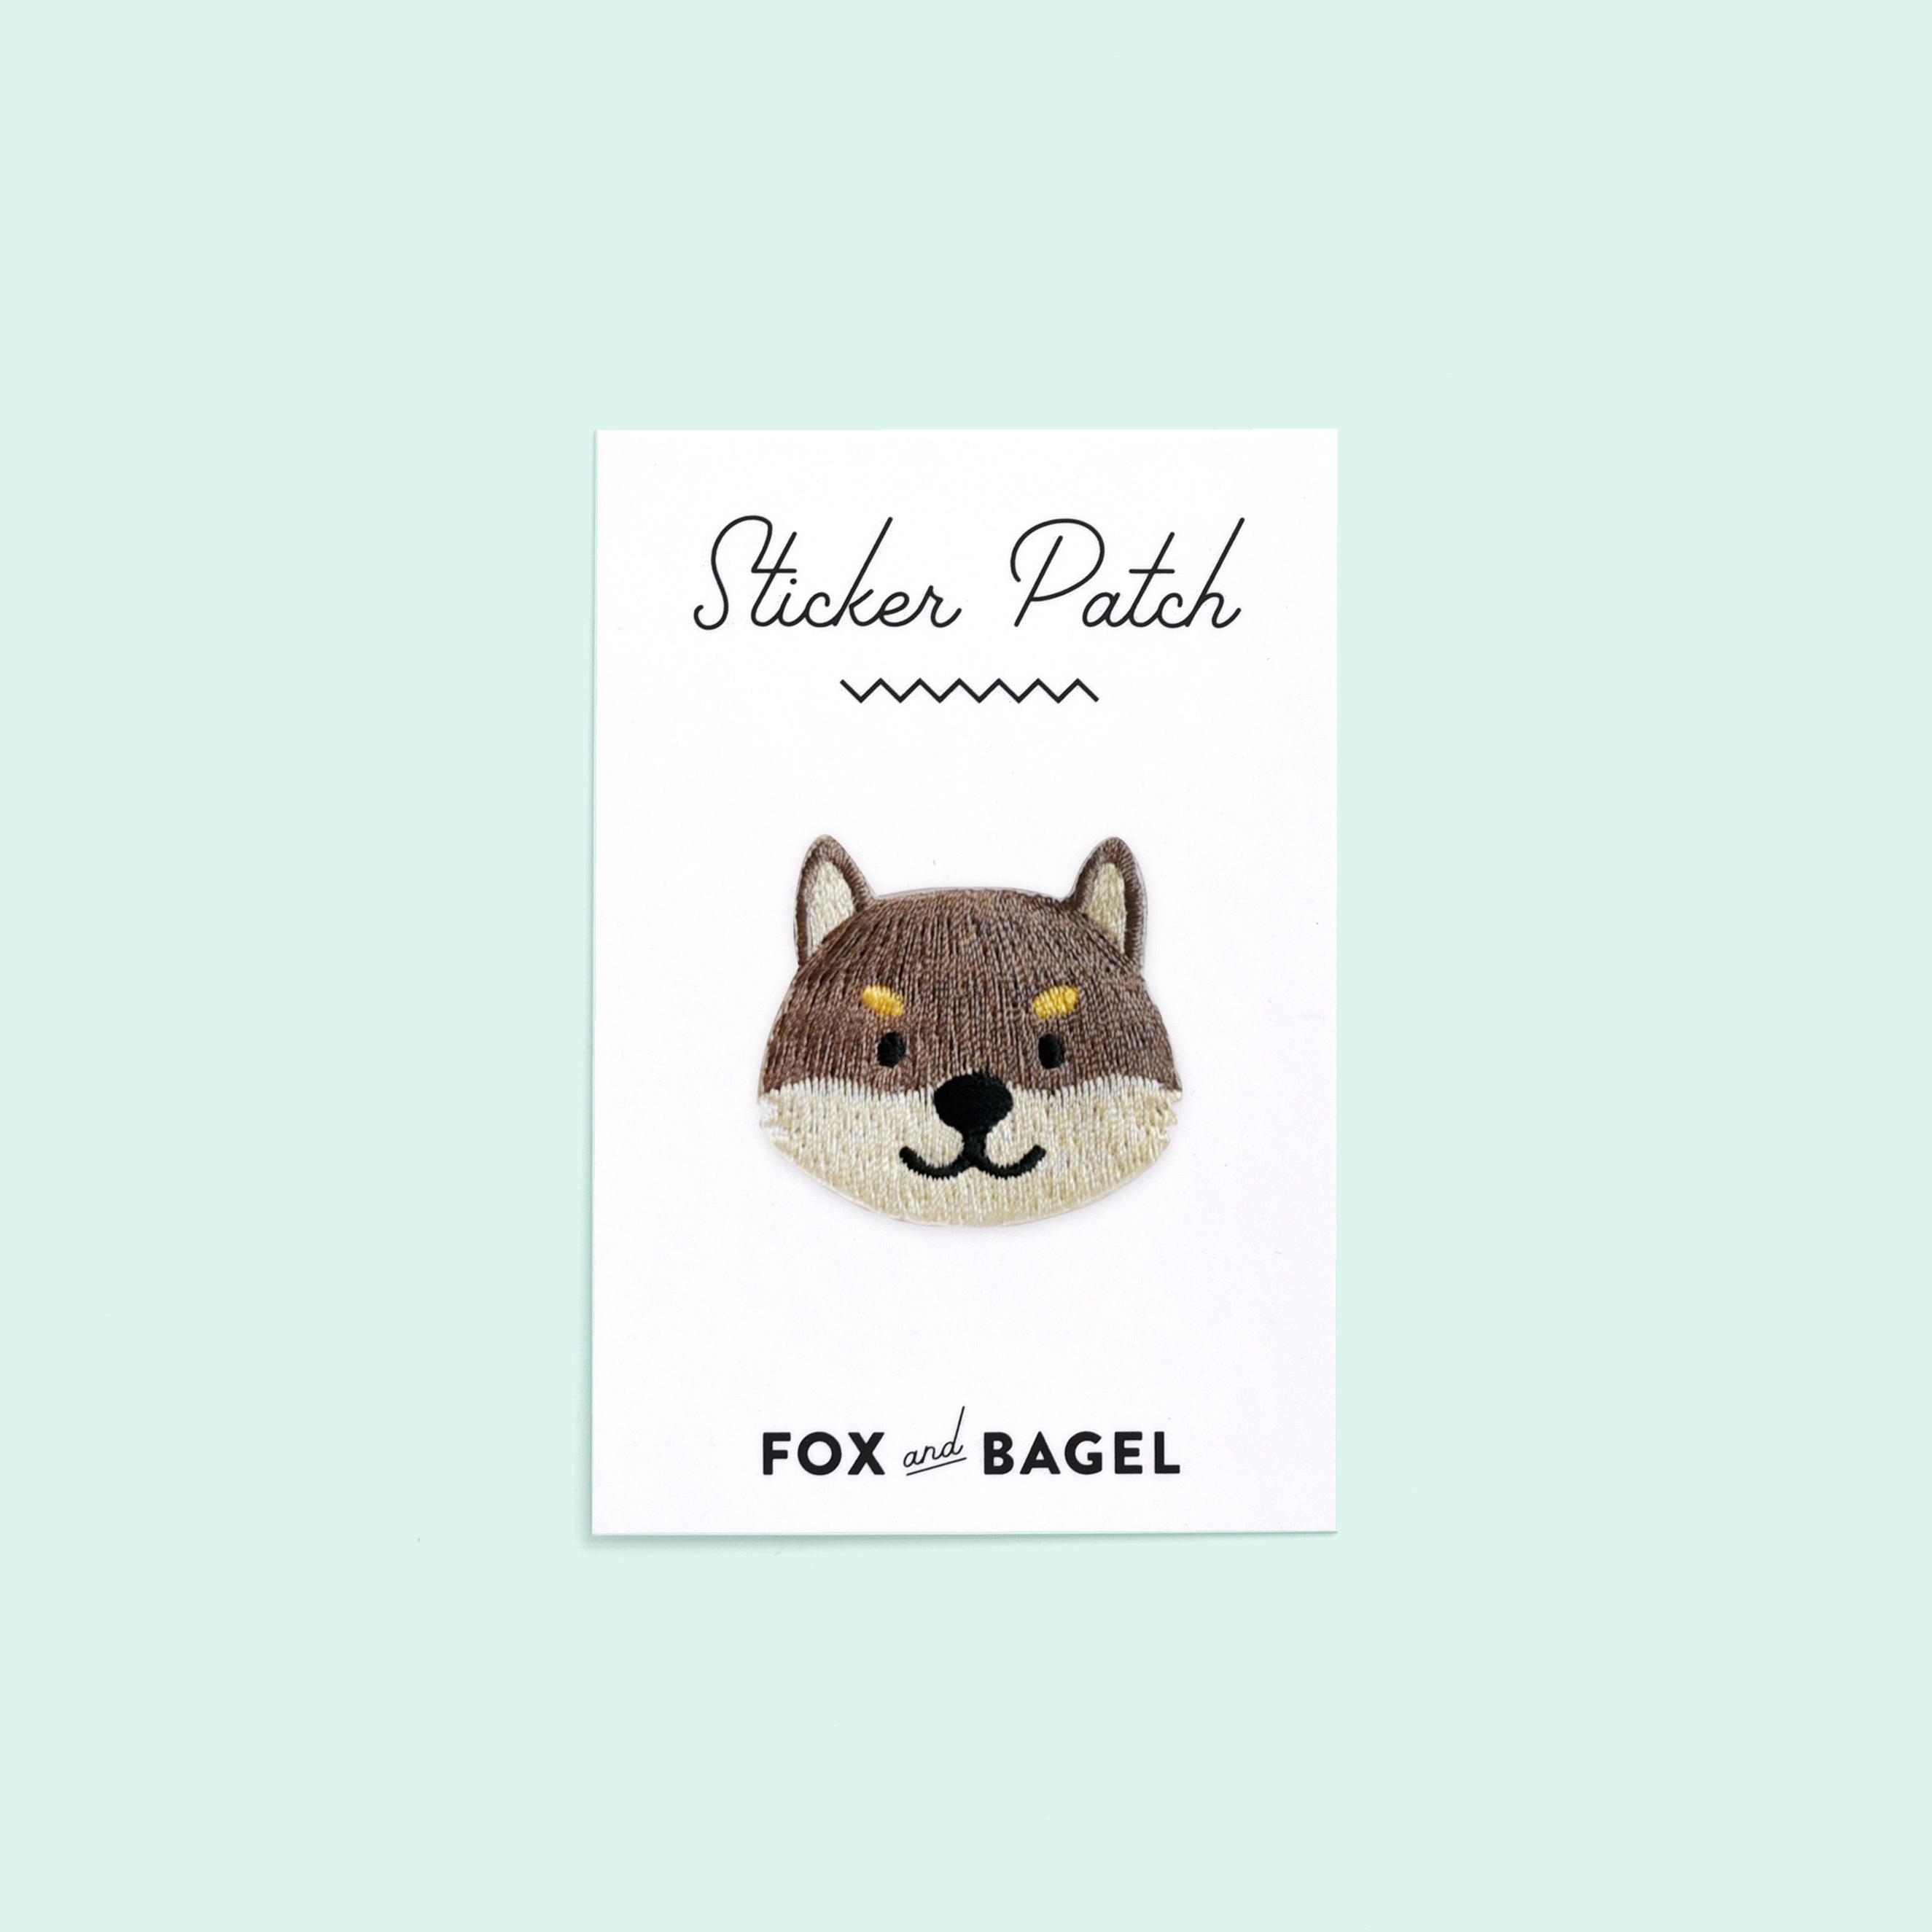 Black & Tan Shiba Inu embroidered sticker patch by Fox & Bagel.